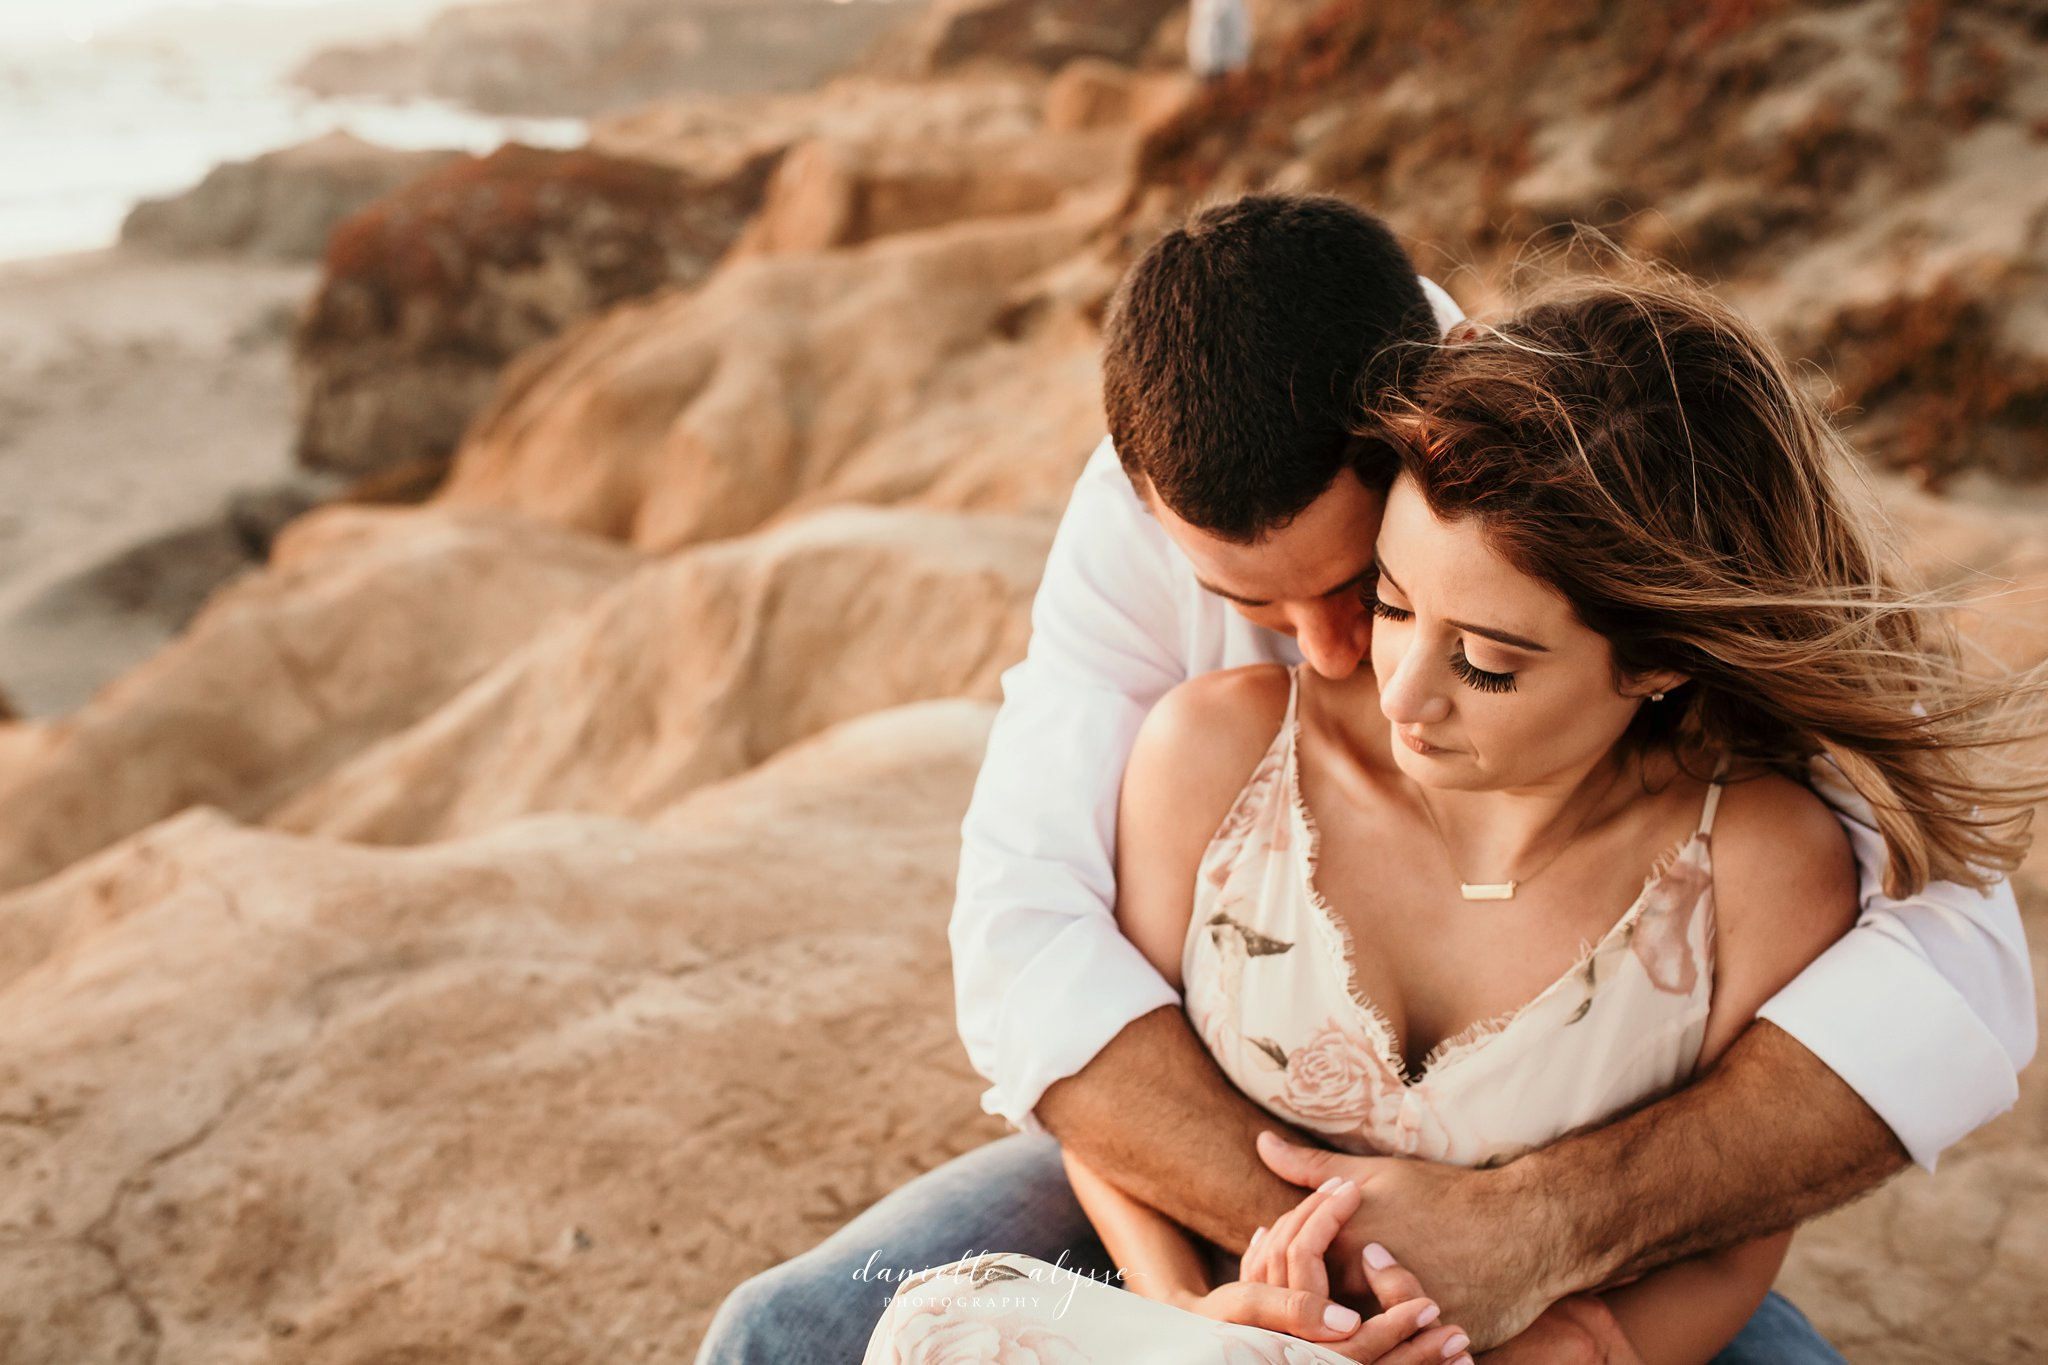 180804_engagement_katie_matt_dillon_beach_napa_danielle_alysse_photography_blog_82_WEB.jpg